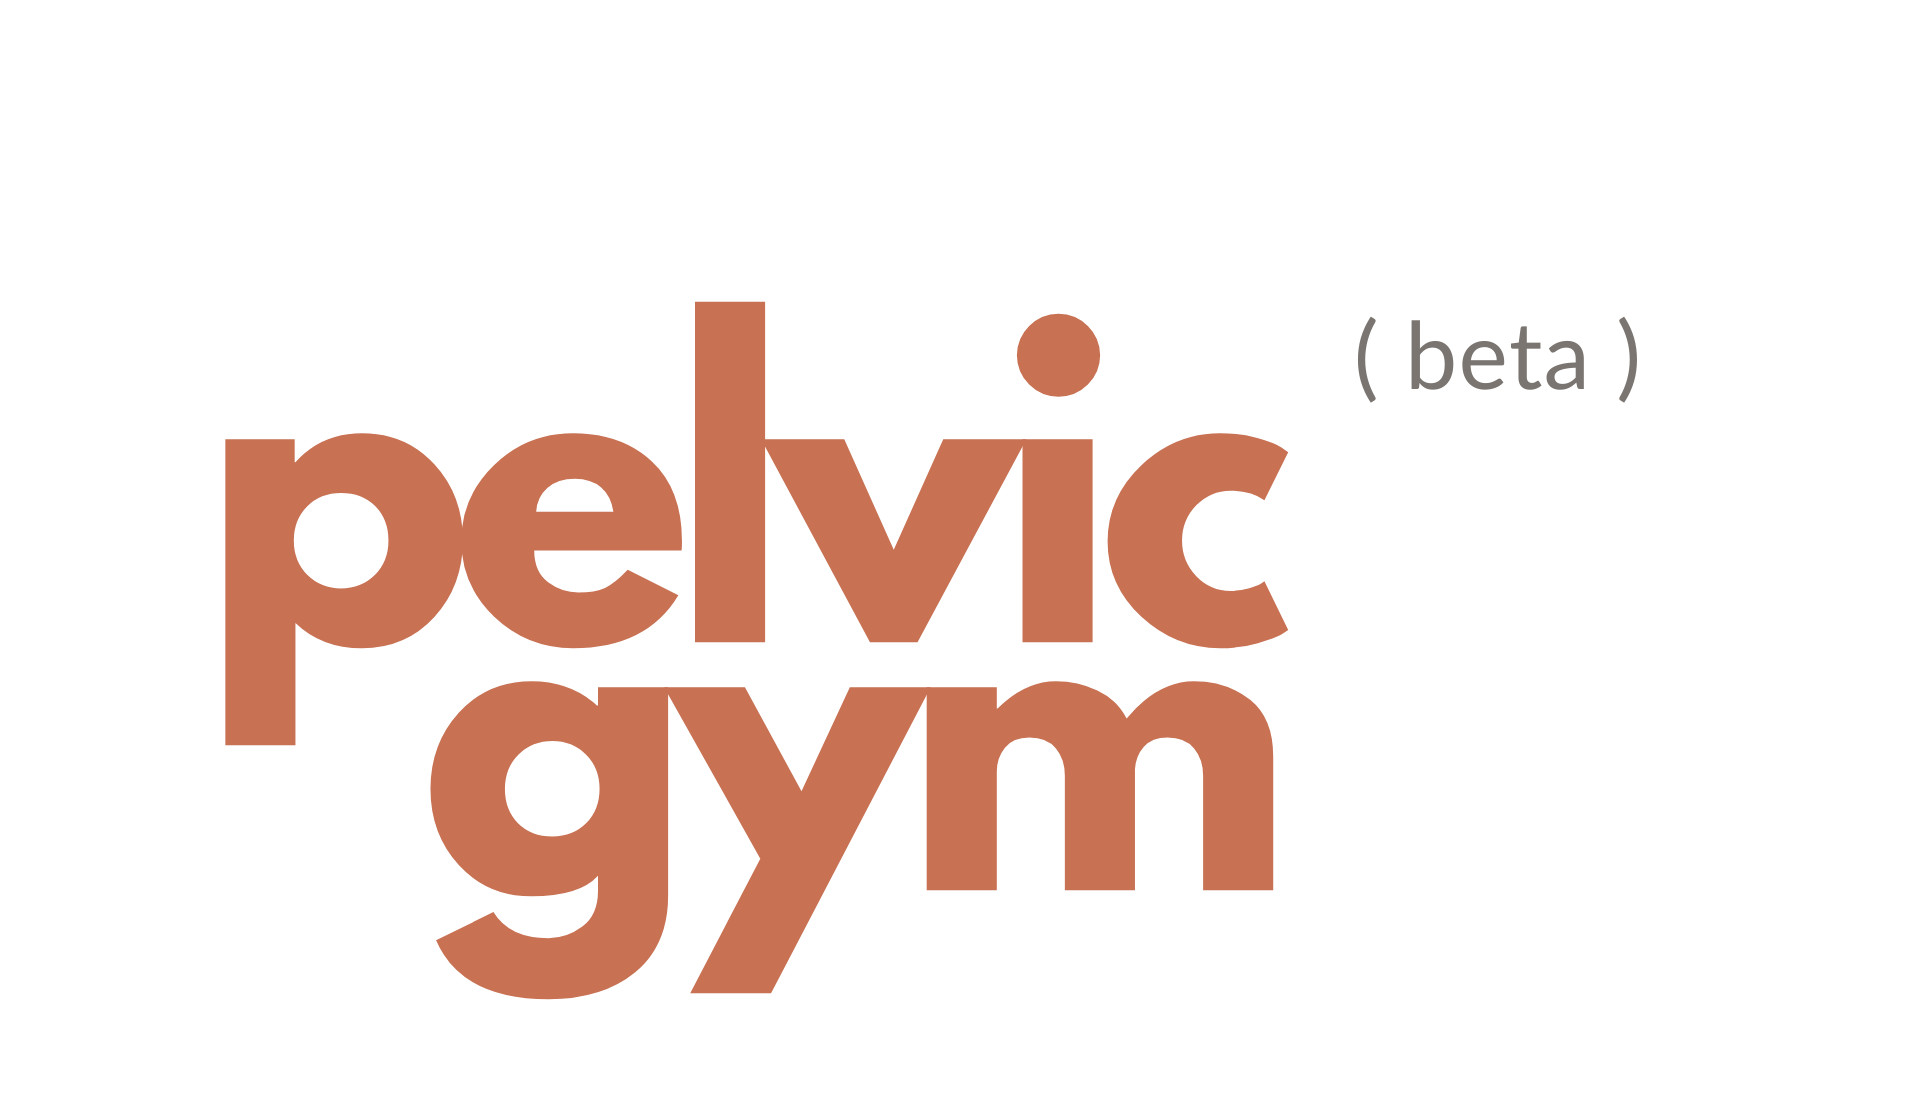 Pelvic Gym (beta) Logo